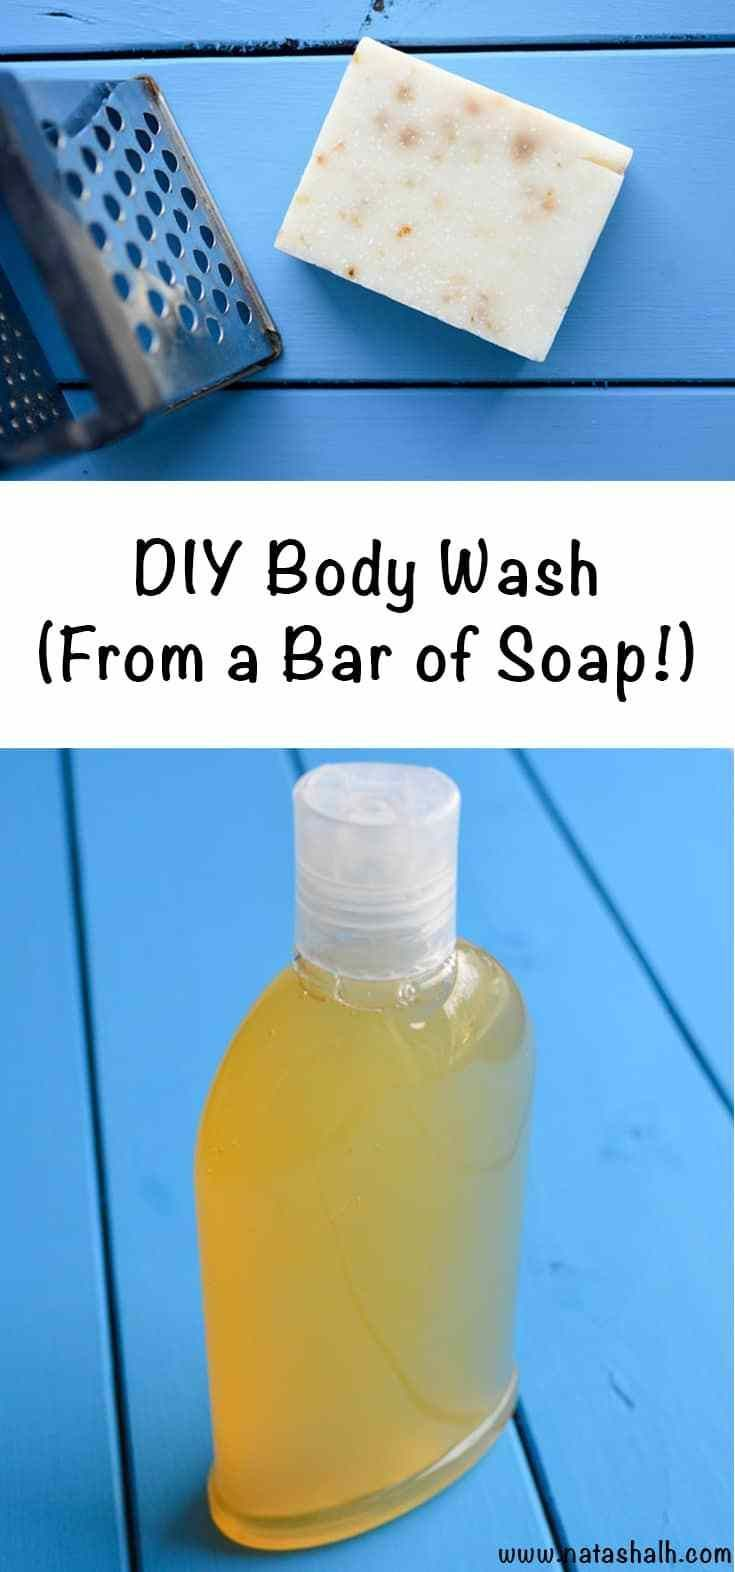 Super Easy Homemade Body Wash from a Bar of Soap is part of Diy body wash, Homemade body wash, Body wash recipe, Homemade soap recipes, Diy body, Making body wash - This beyond easy body wash from a bar of soap recipe shows you how to transform your favorite bar of soap into body wash! Quick, easy, cheap homemade body wash